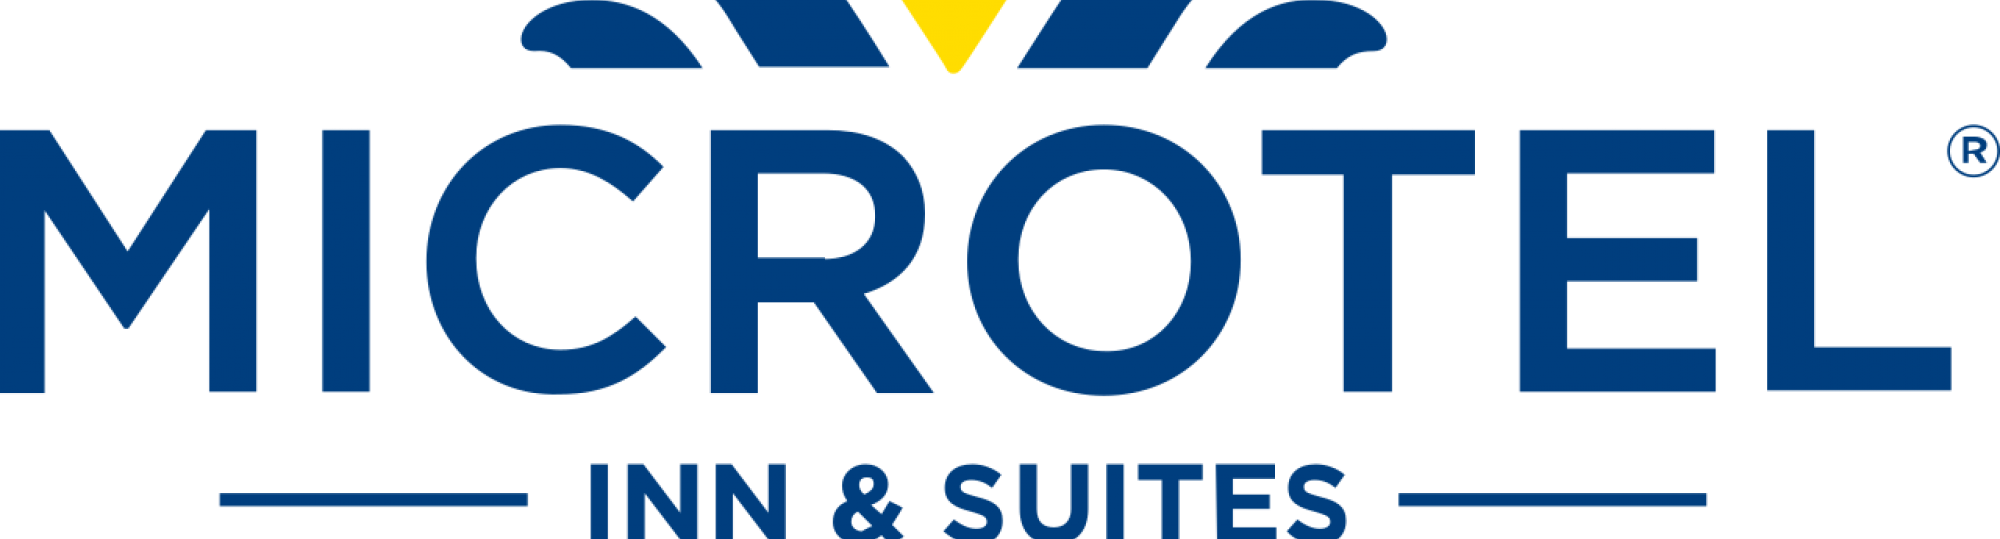 Microtel Military Discount with Veterans Advantage